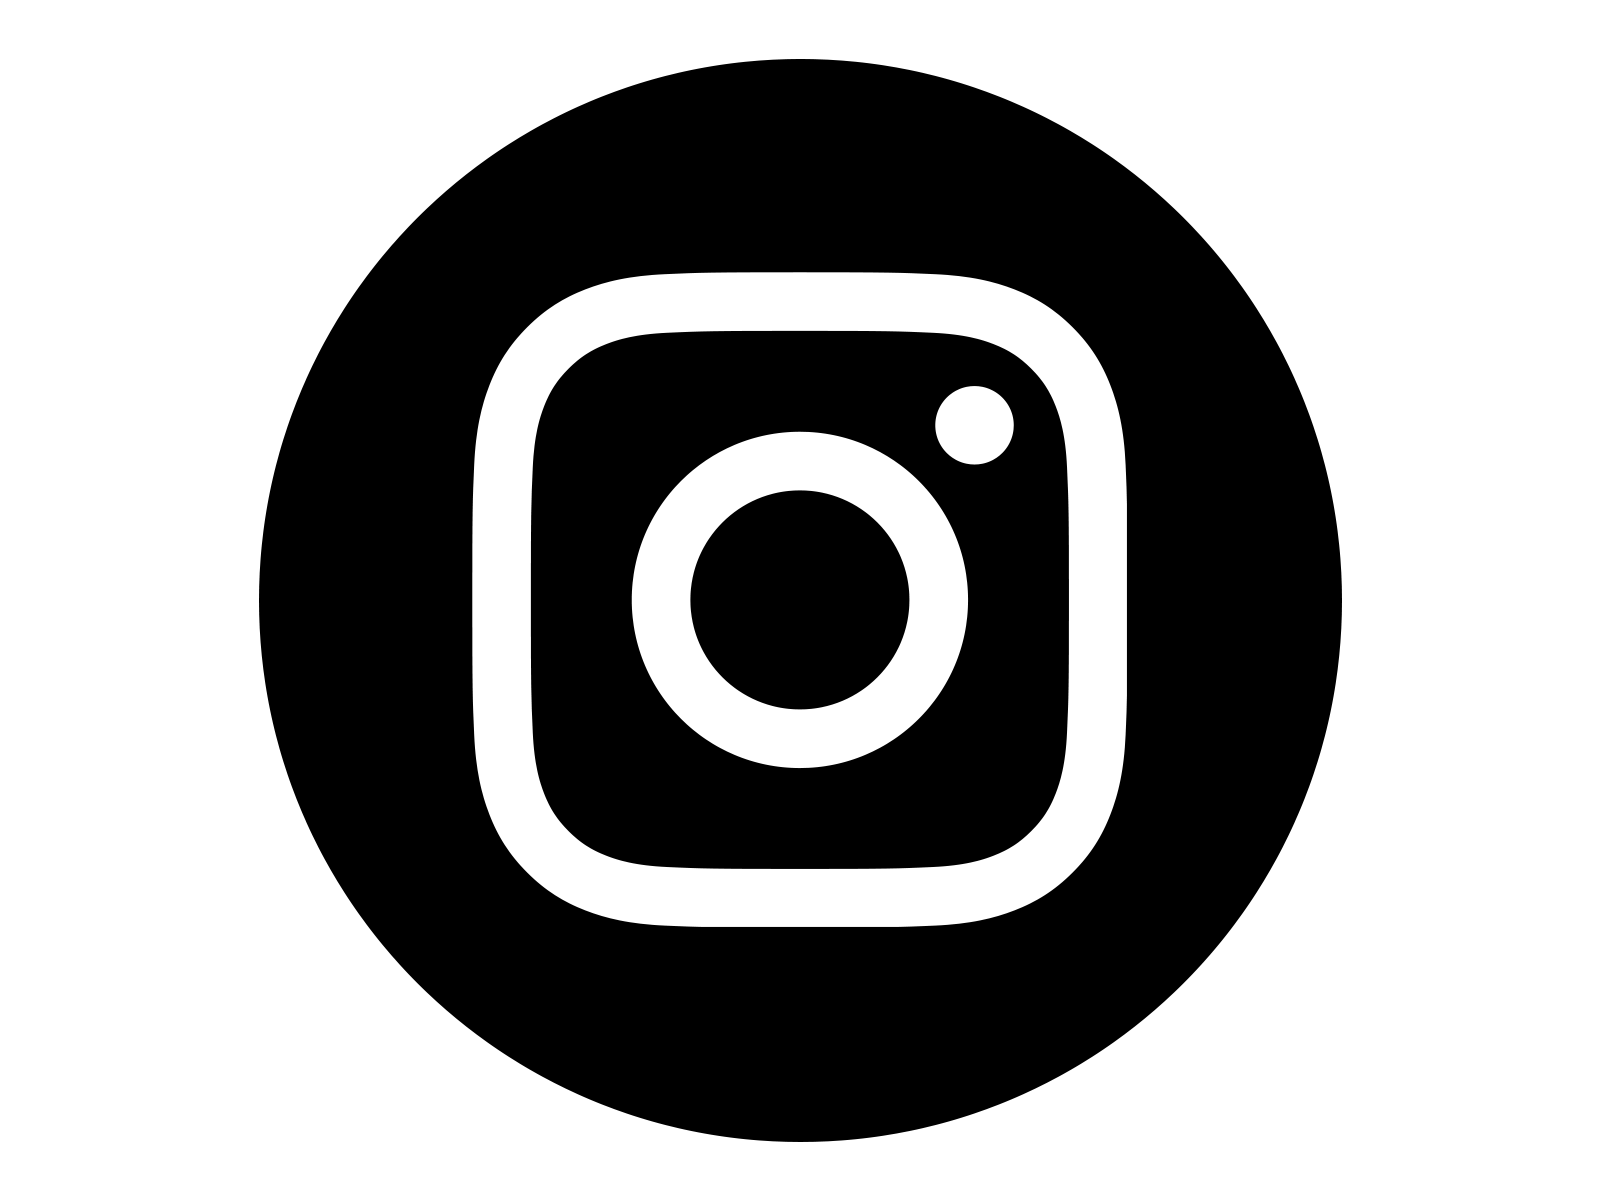 Logo Instagram Png - Instagram Icon White On Black Circle, Transparent background PNG HD thumbnail